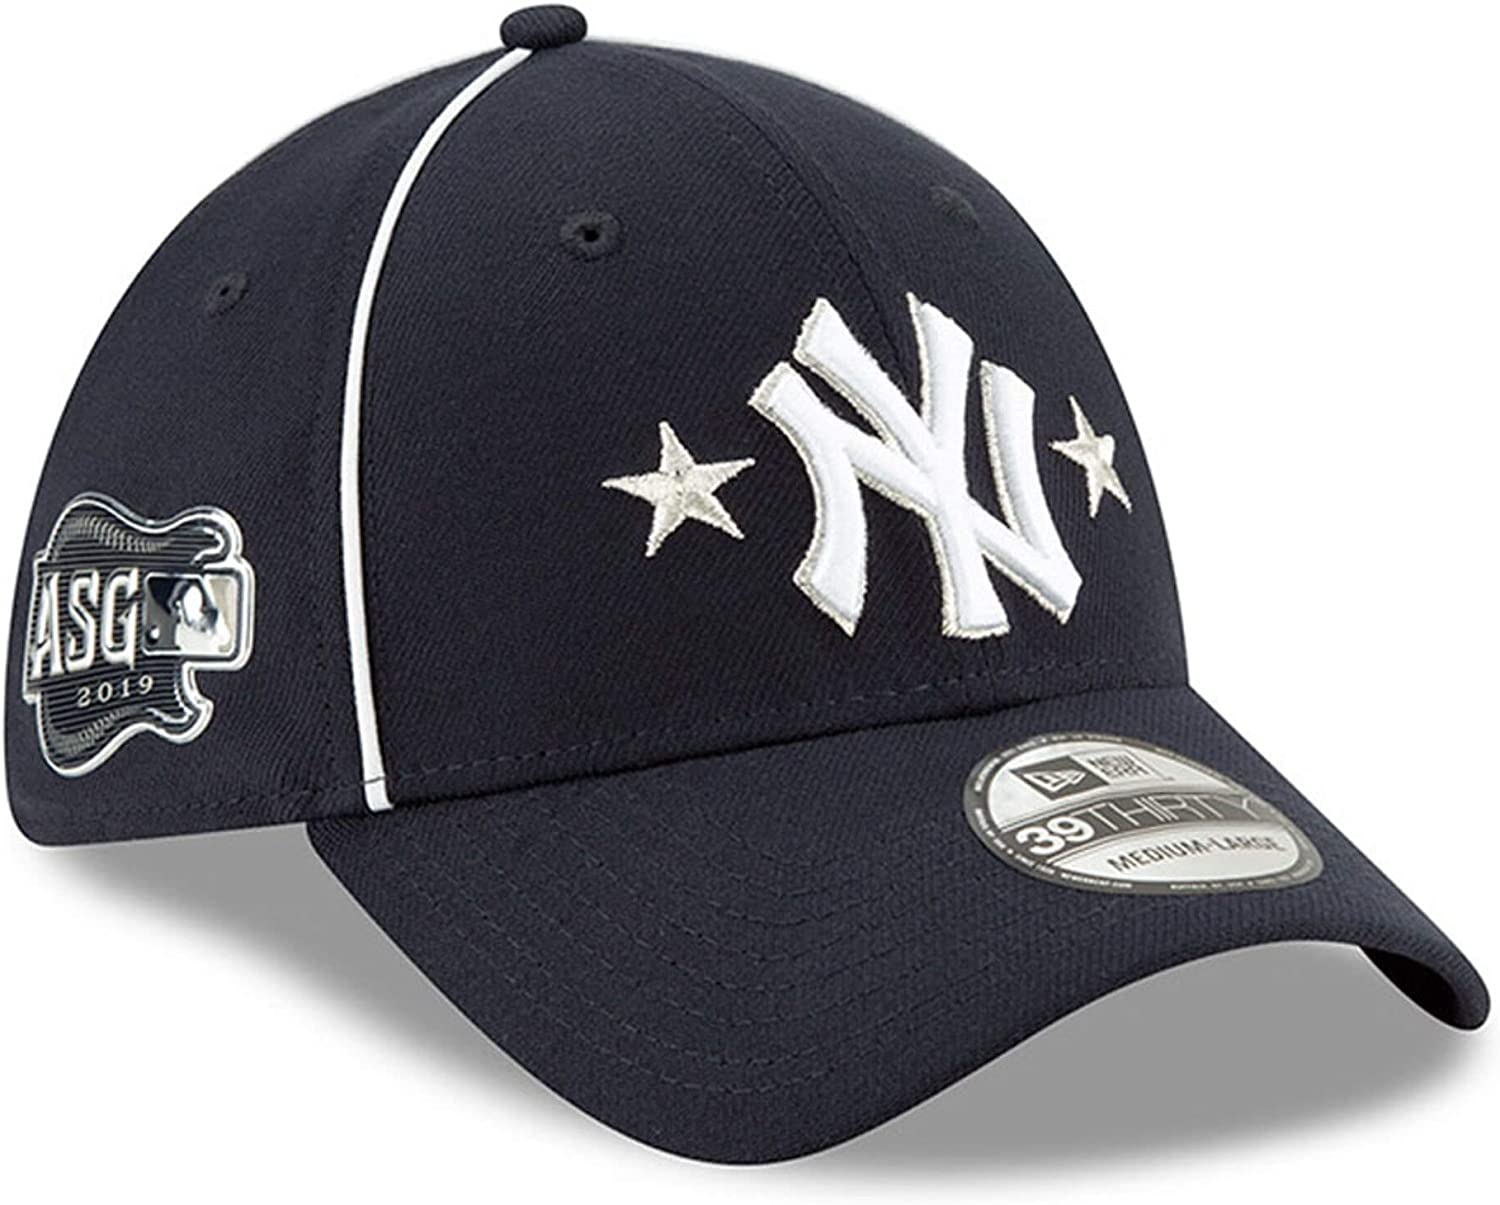 New Era New York Yankees 2019 MLB All-Star Game 39THIRTY Flex Hat Navy